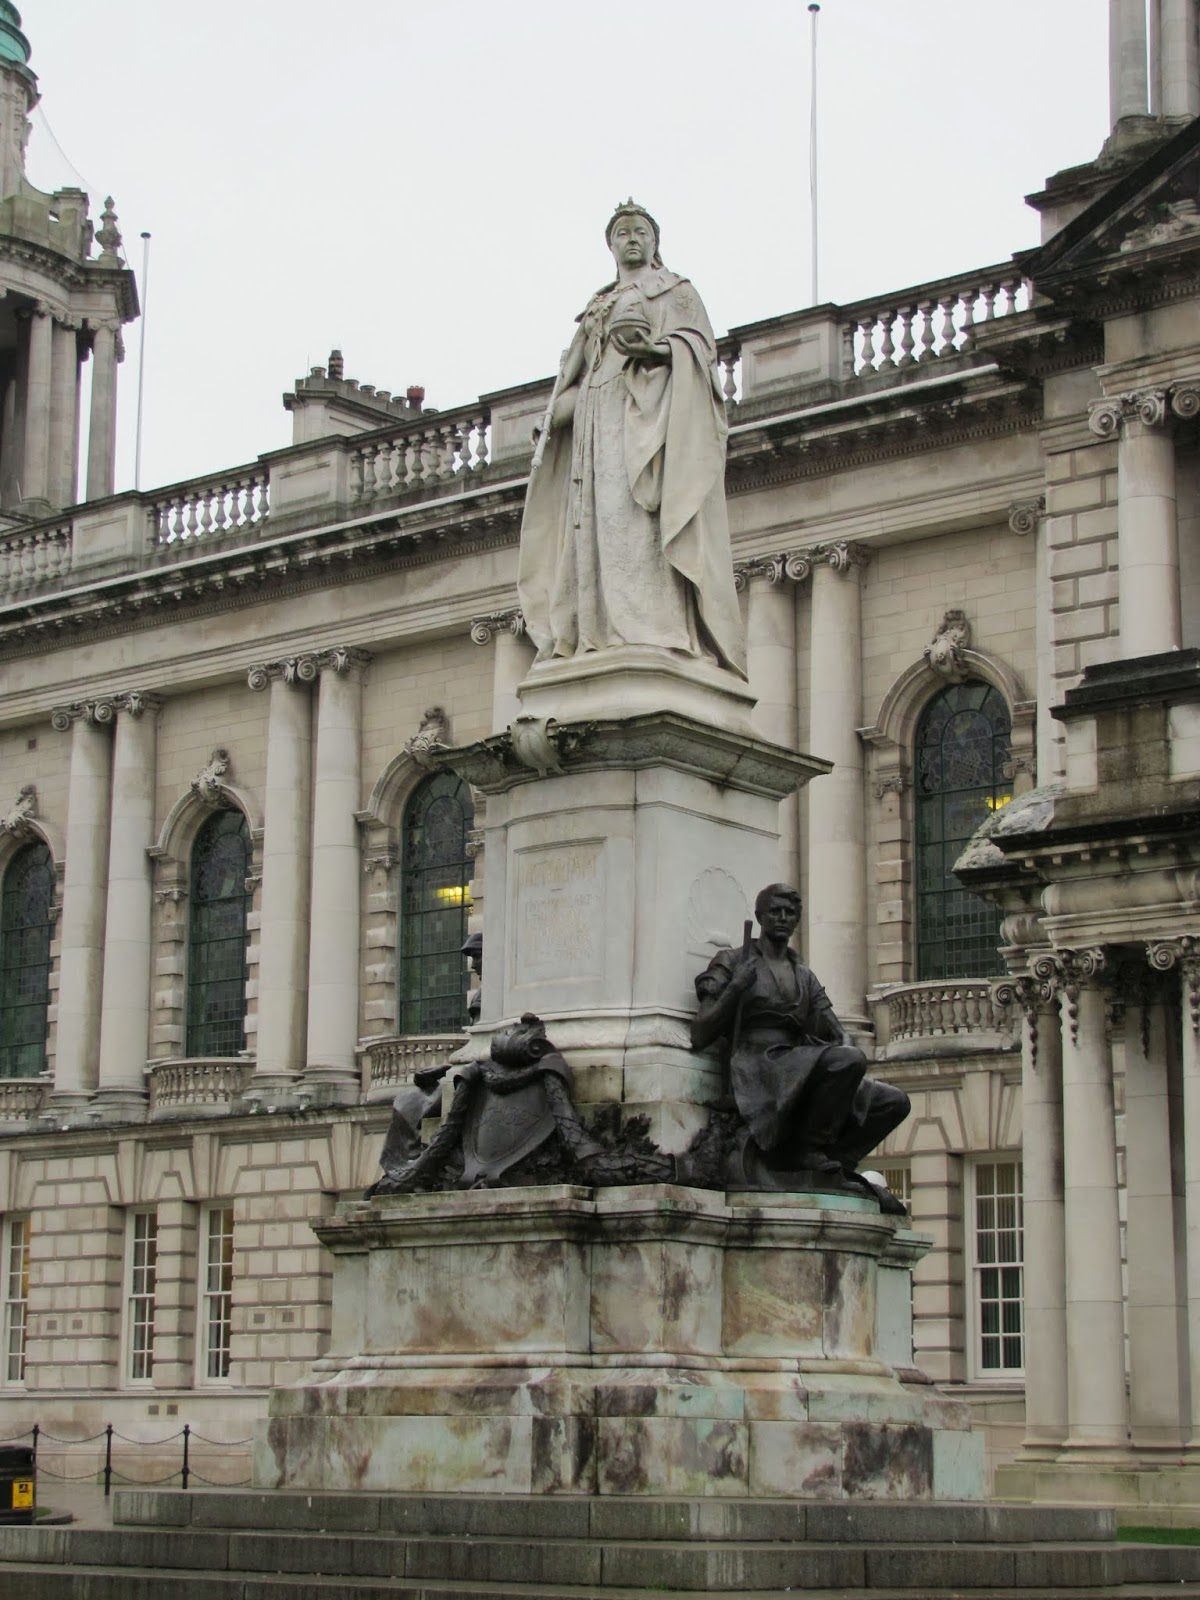 Queen Victoria stands above the people in Belfast, Northern Ireland